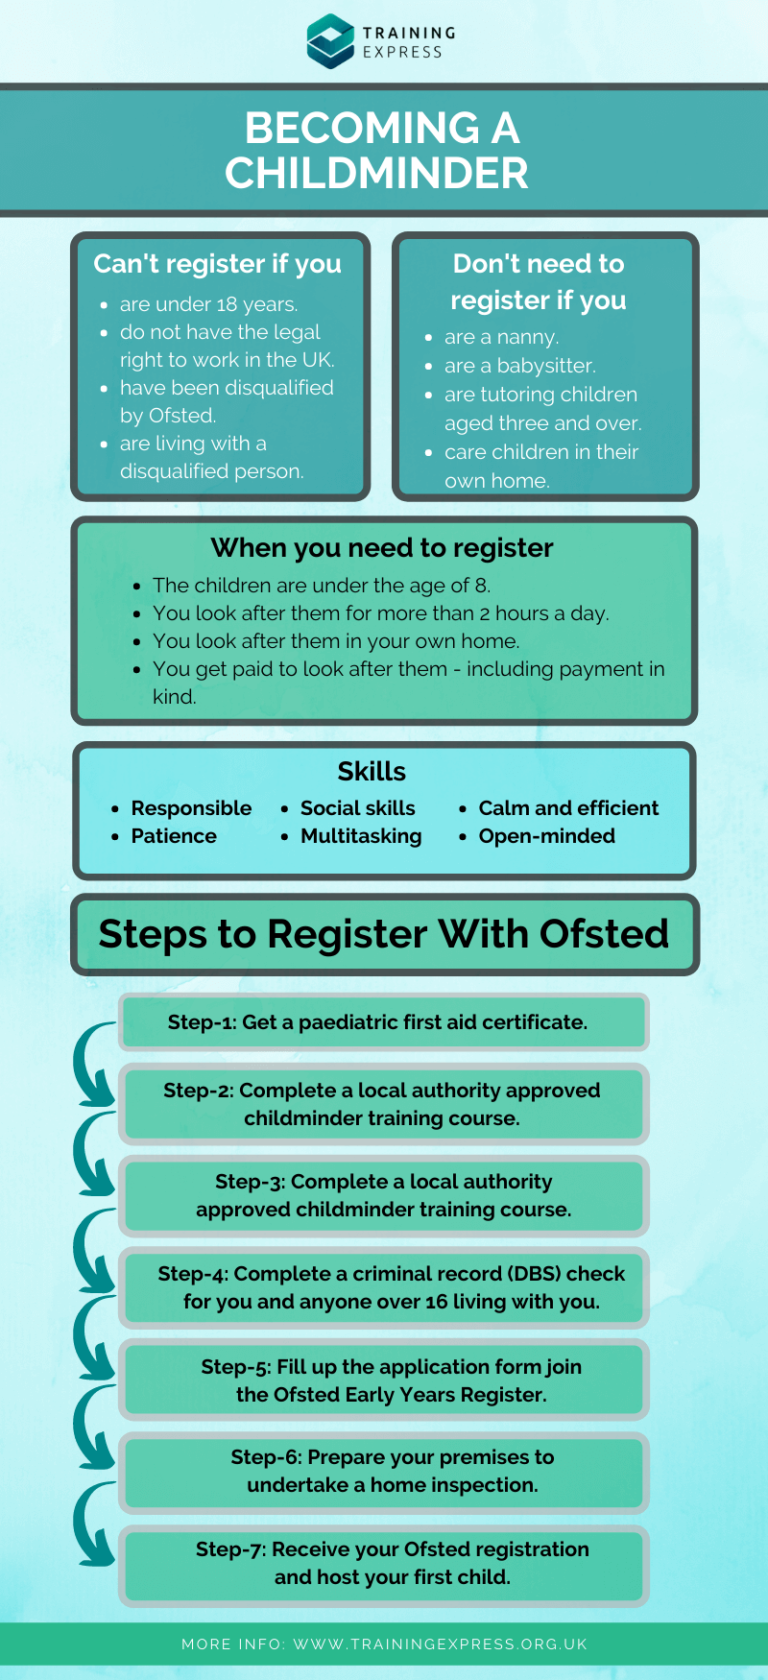 Infographics on becoming a childminder - Skills and steps to follow